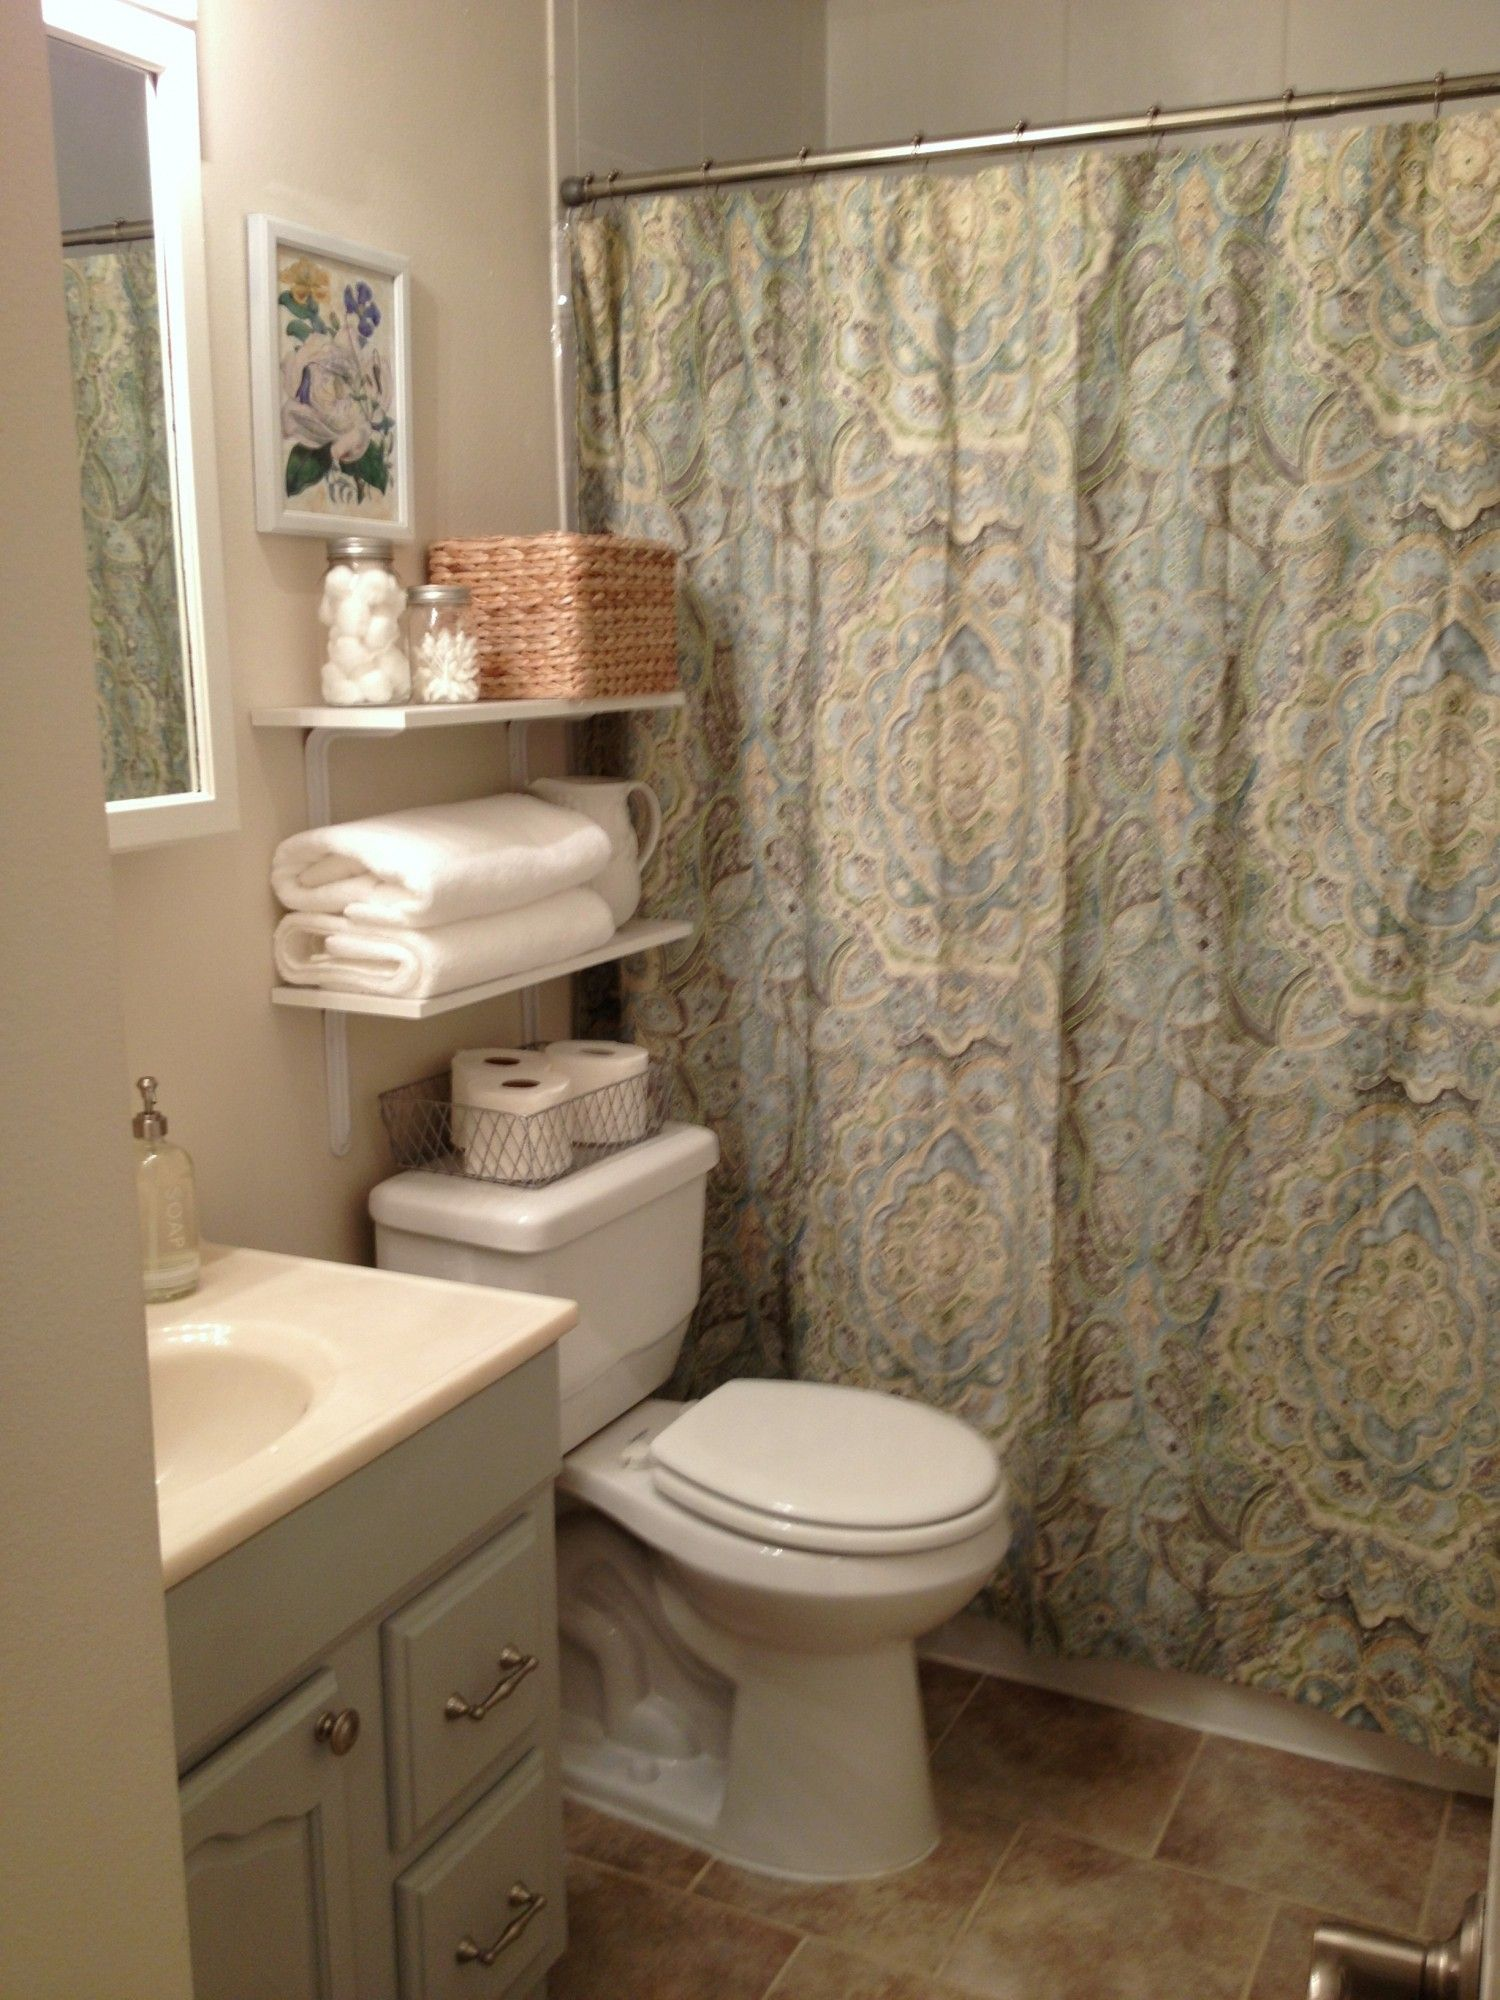 Simple bathroom curtain ideas - Simple Bathroom